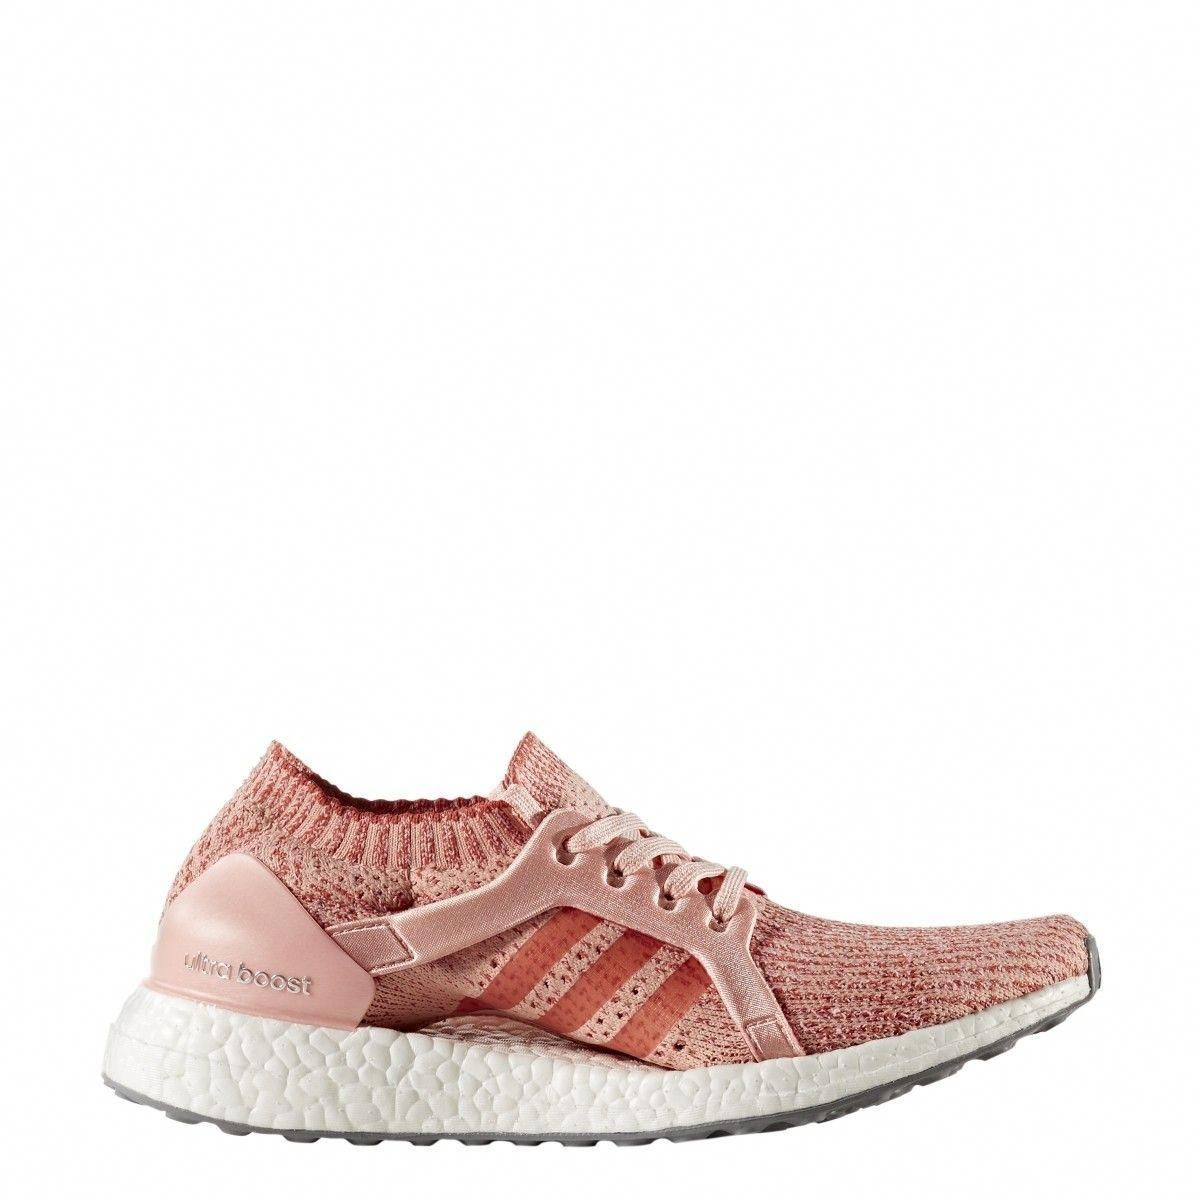 finest selection 0de1b cbeeb adidas Ultra Boost X Shoe - Women s Running   RevUp Sports   trailrunningshoes  women srunningultraboostxshoes